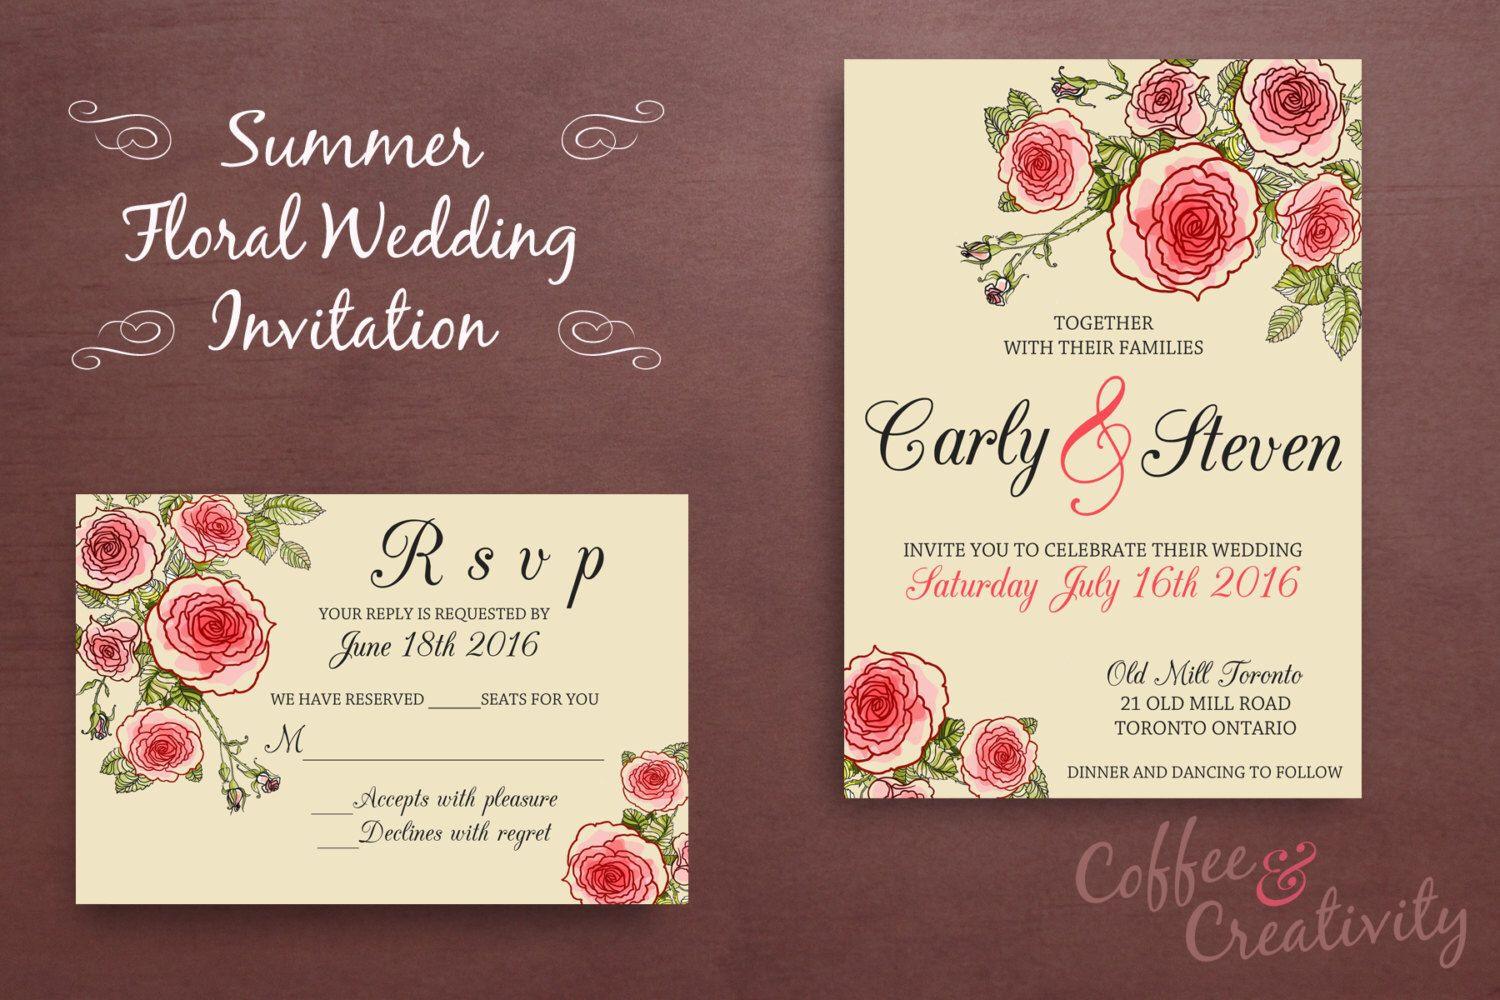 Fancy Cheap Invites For Wedding Crest - Invitations and ...